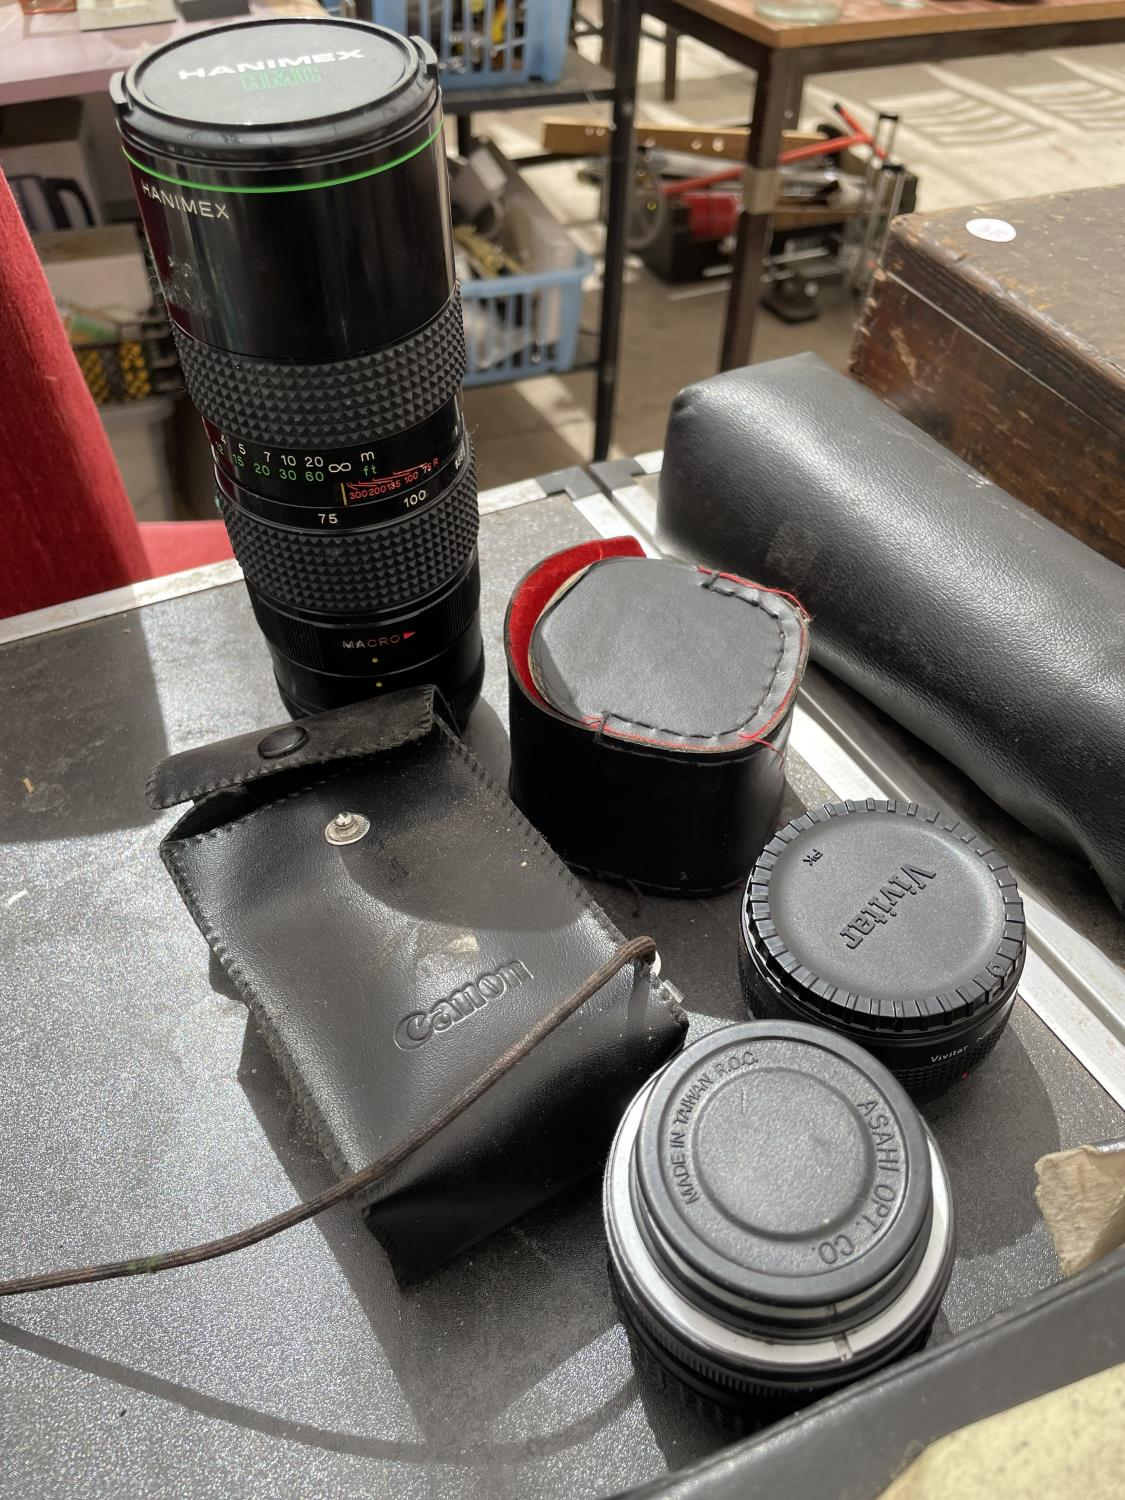 AN ASSORTMENT OF CAMERA EQUIPMENT TO INCLUDE HANIMEX AUTOZOOM LENS, OLYMPUS C10 CAMERA AND VIVITAR - Image 4 of 4